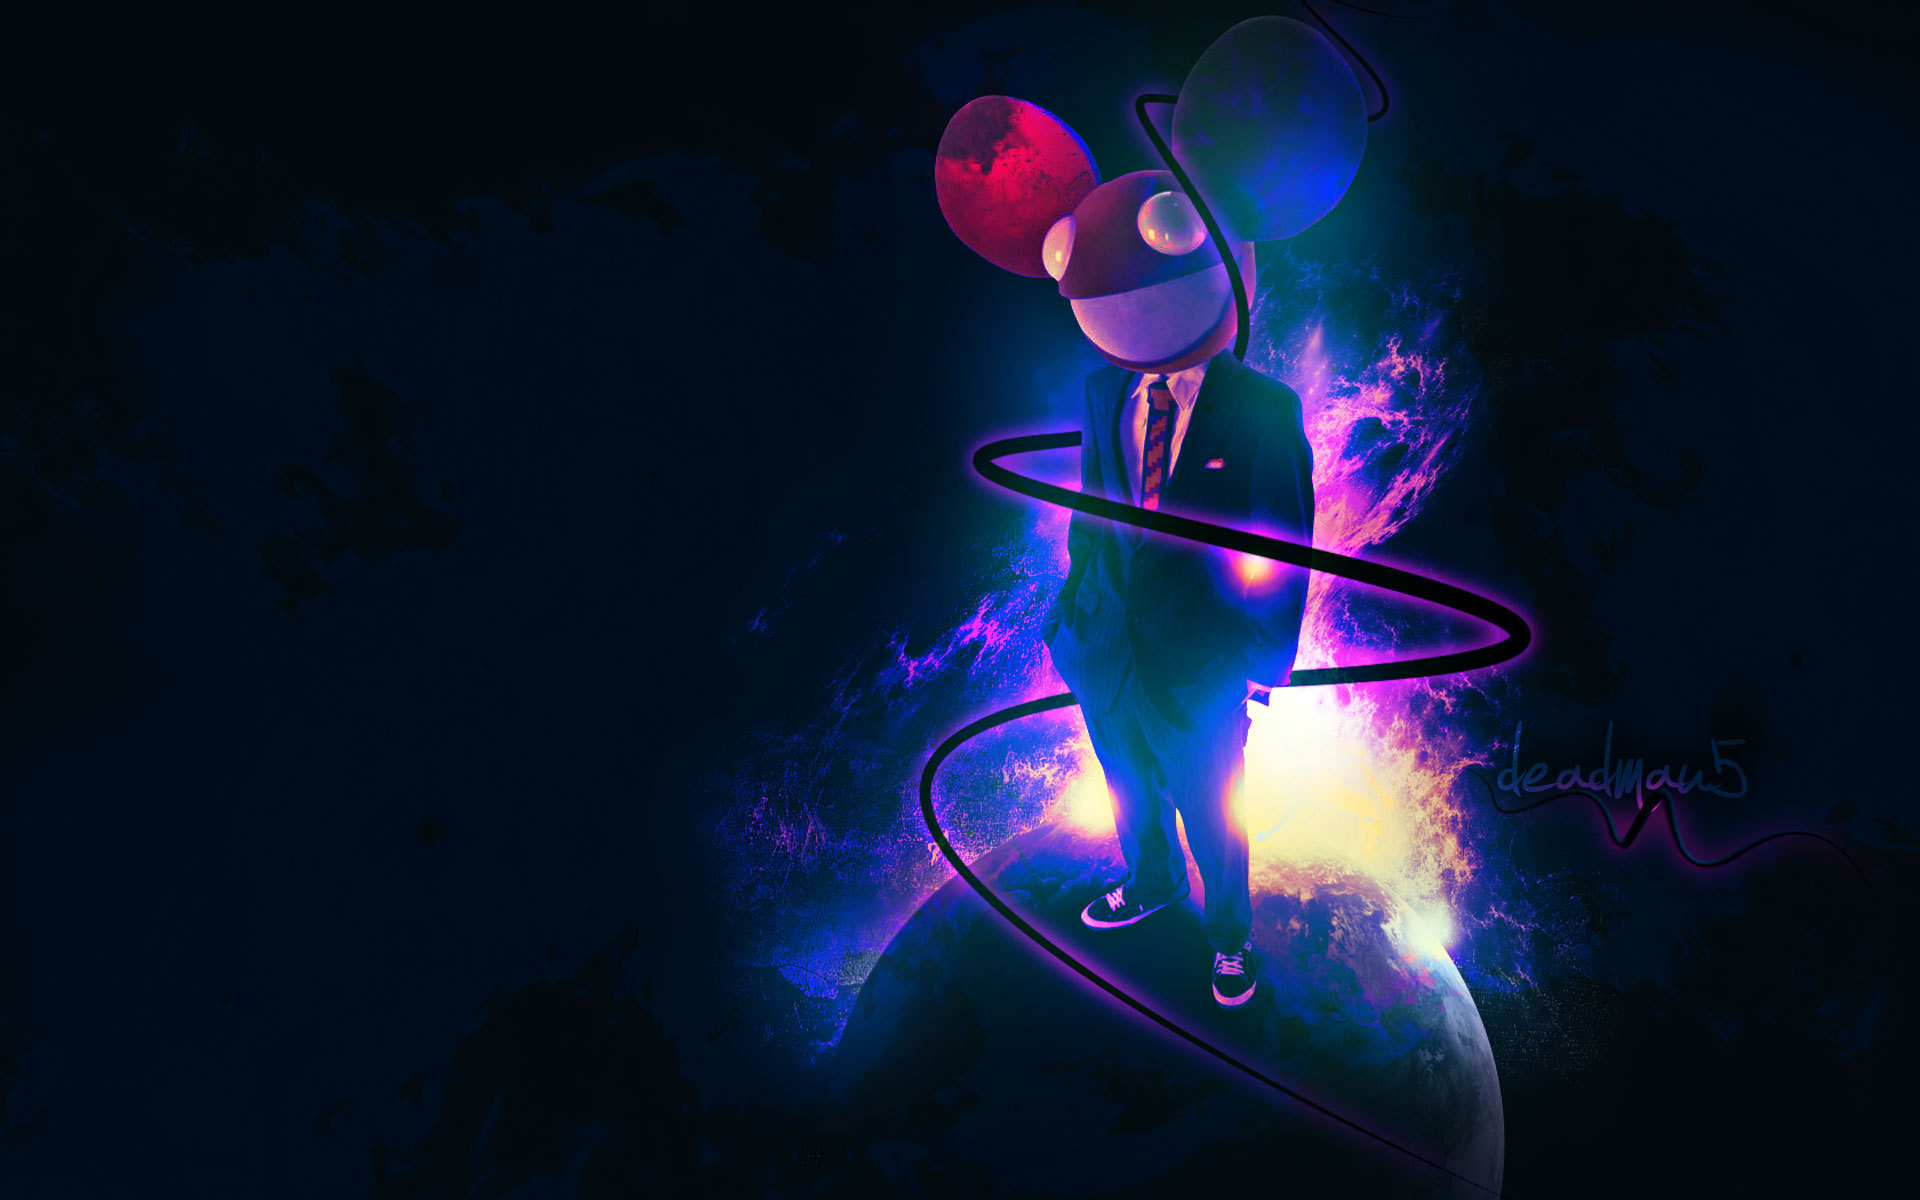 Deadmau5 dead mouse music wallpaper 1920x1200 101502 Nice house music